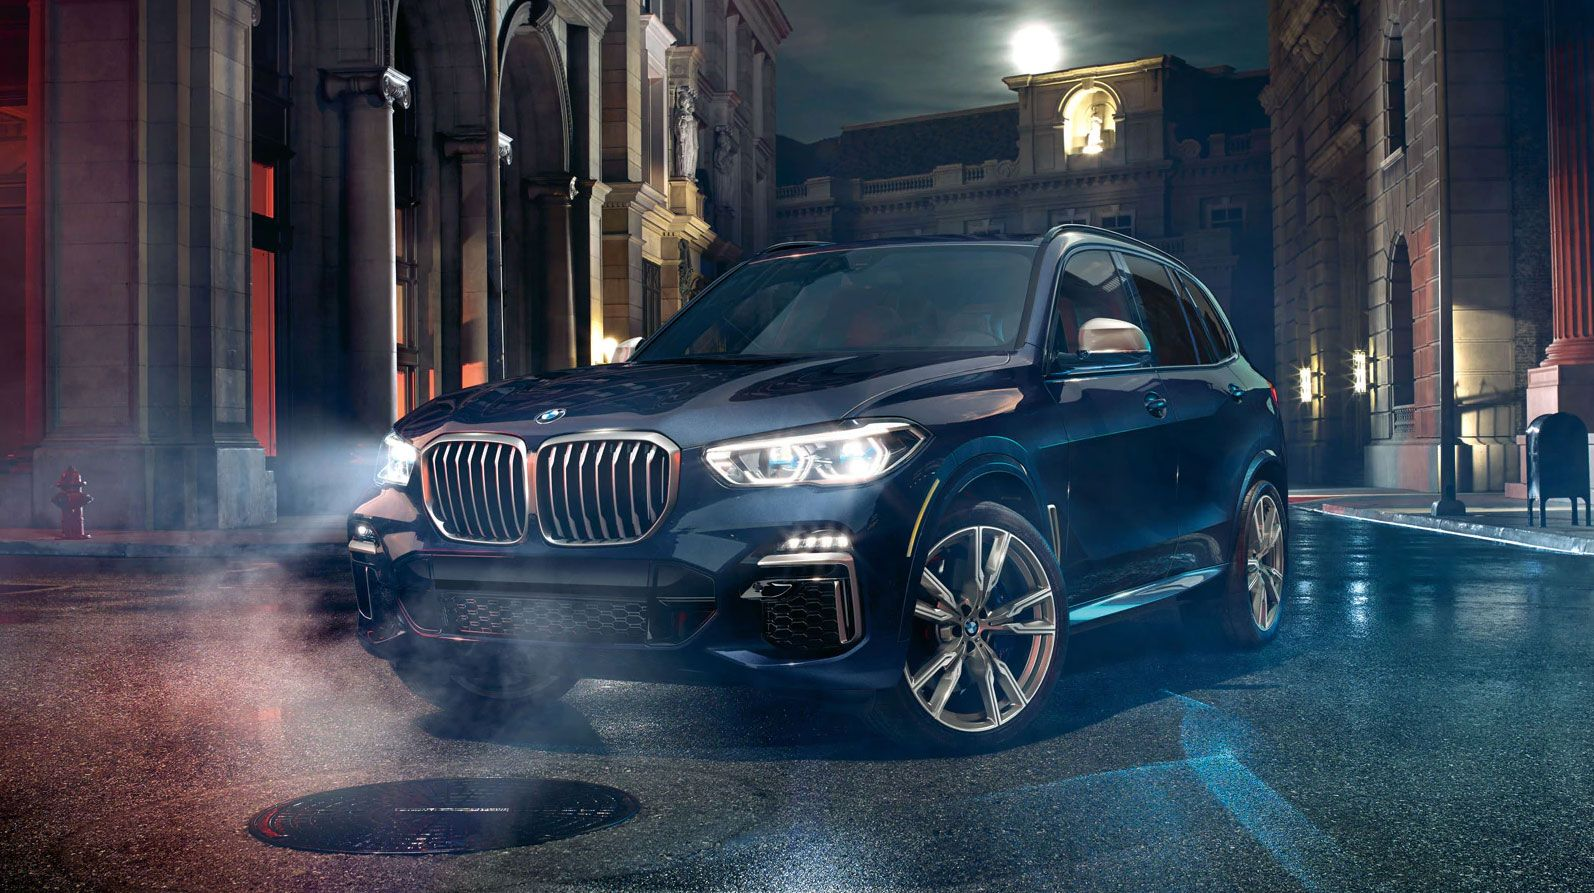 2020 Bmw X5 Review Pricing And Specs